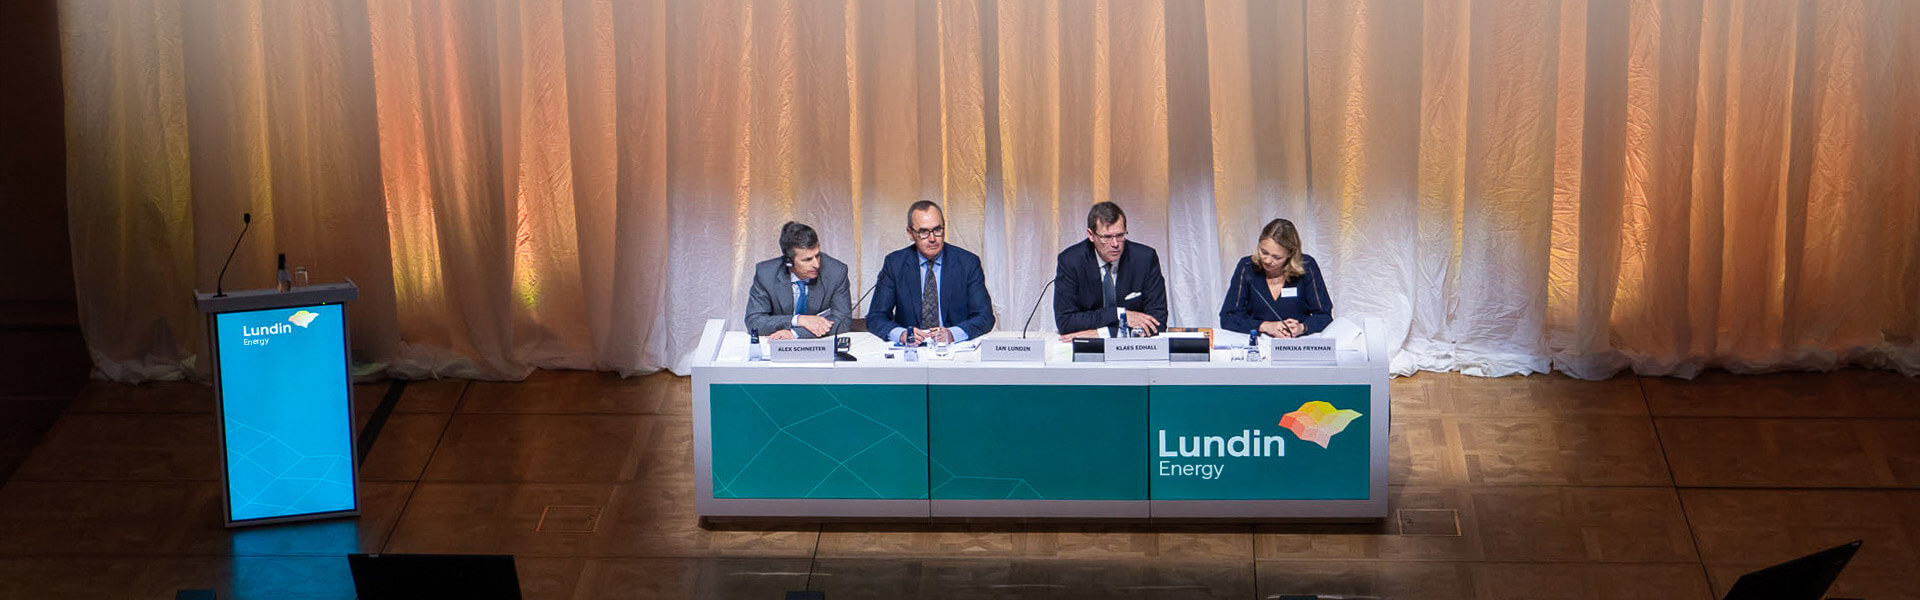 Lundin Energy shareholder meetings